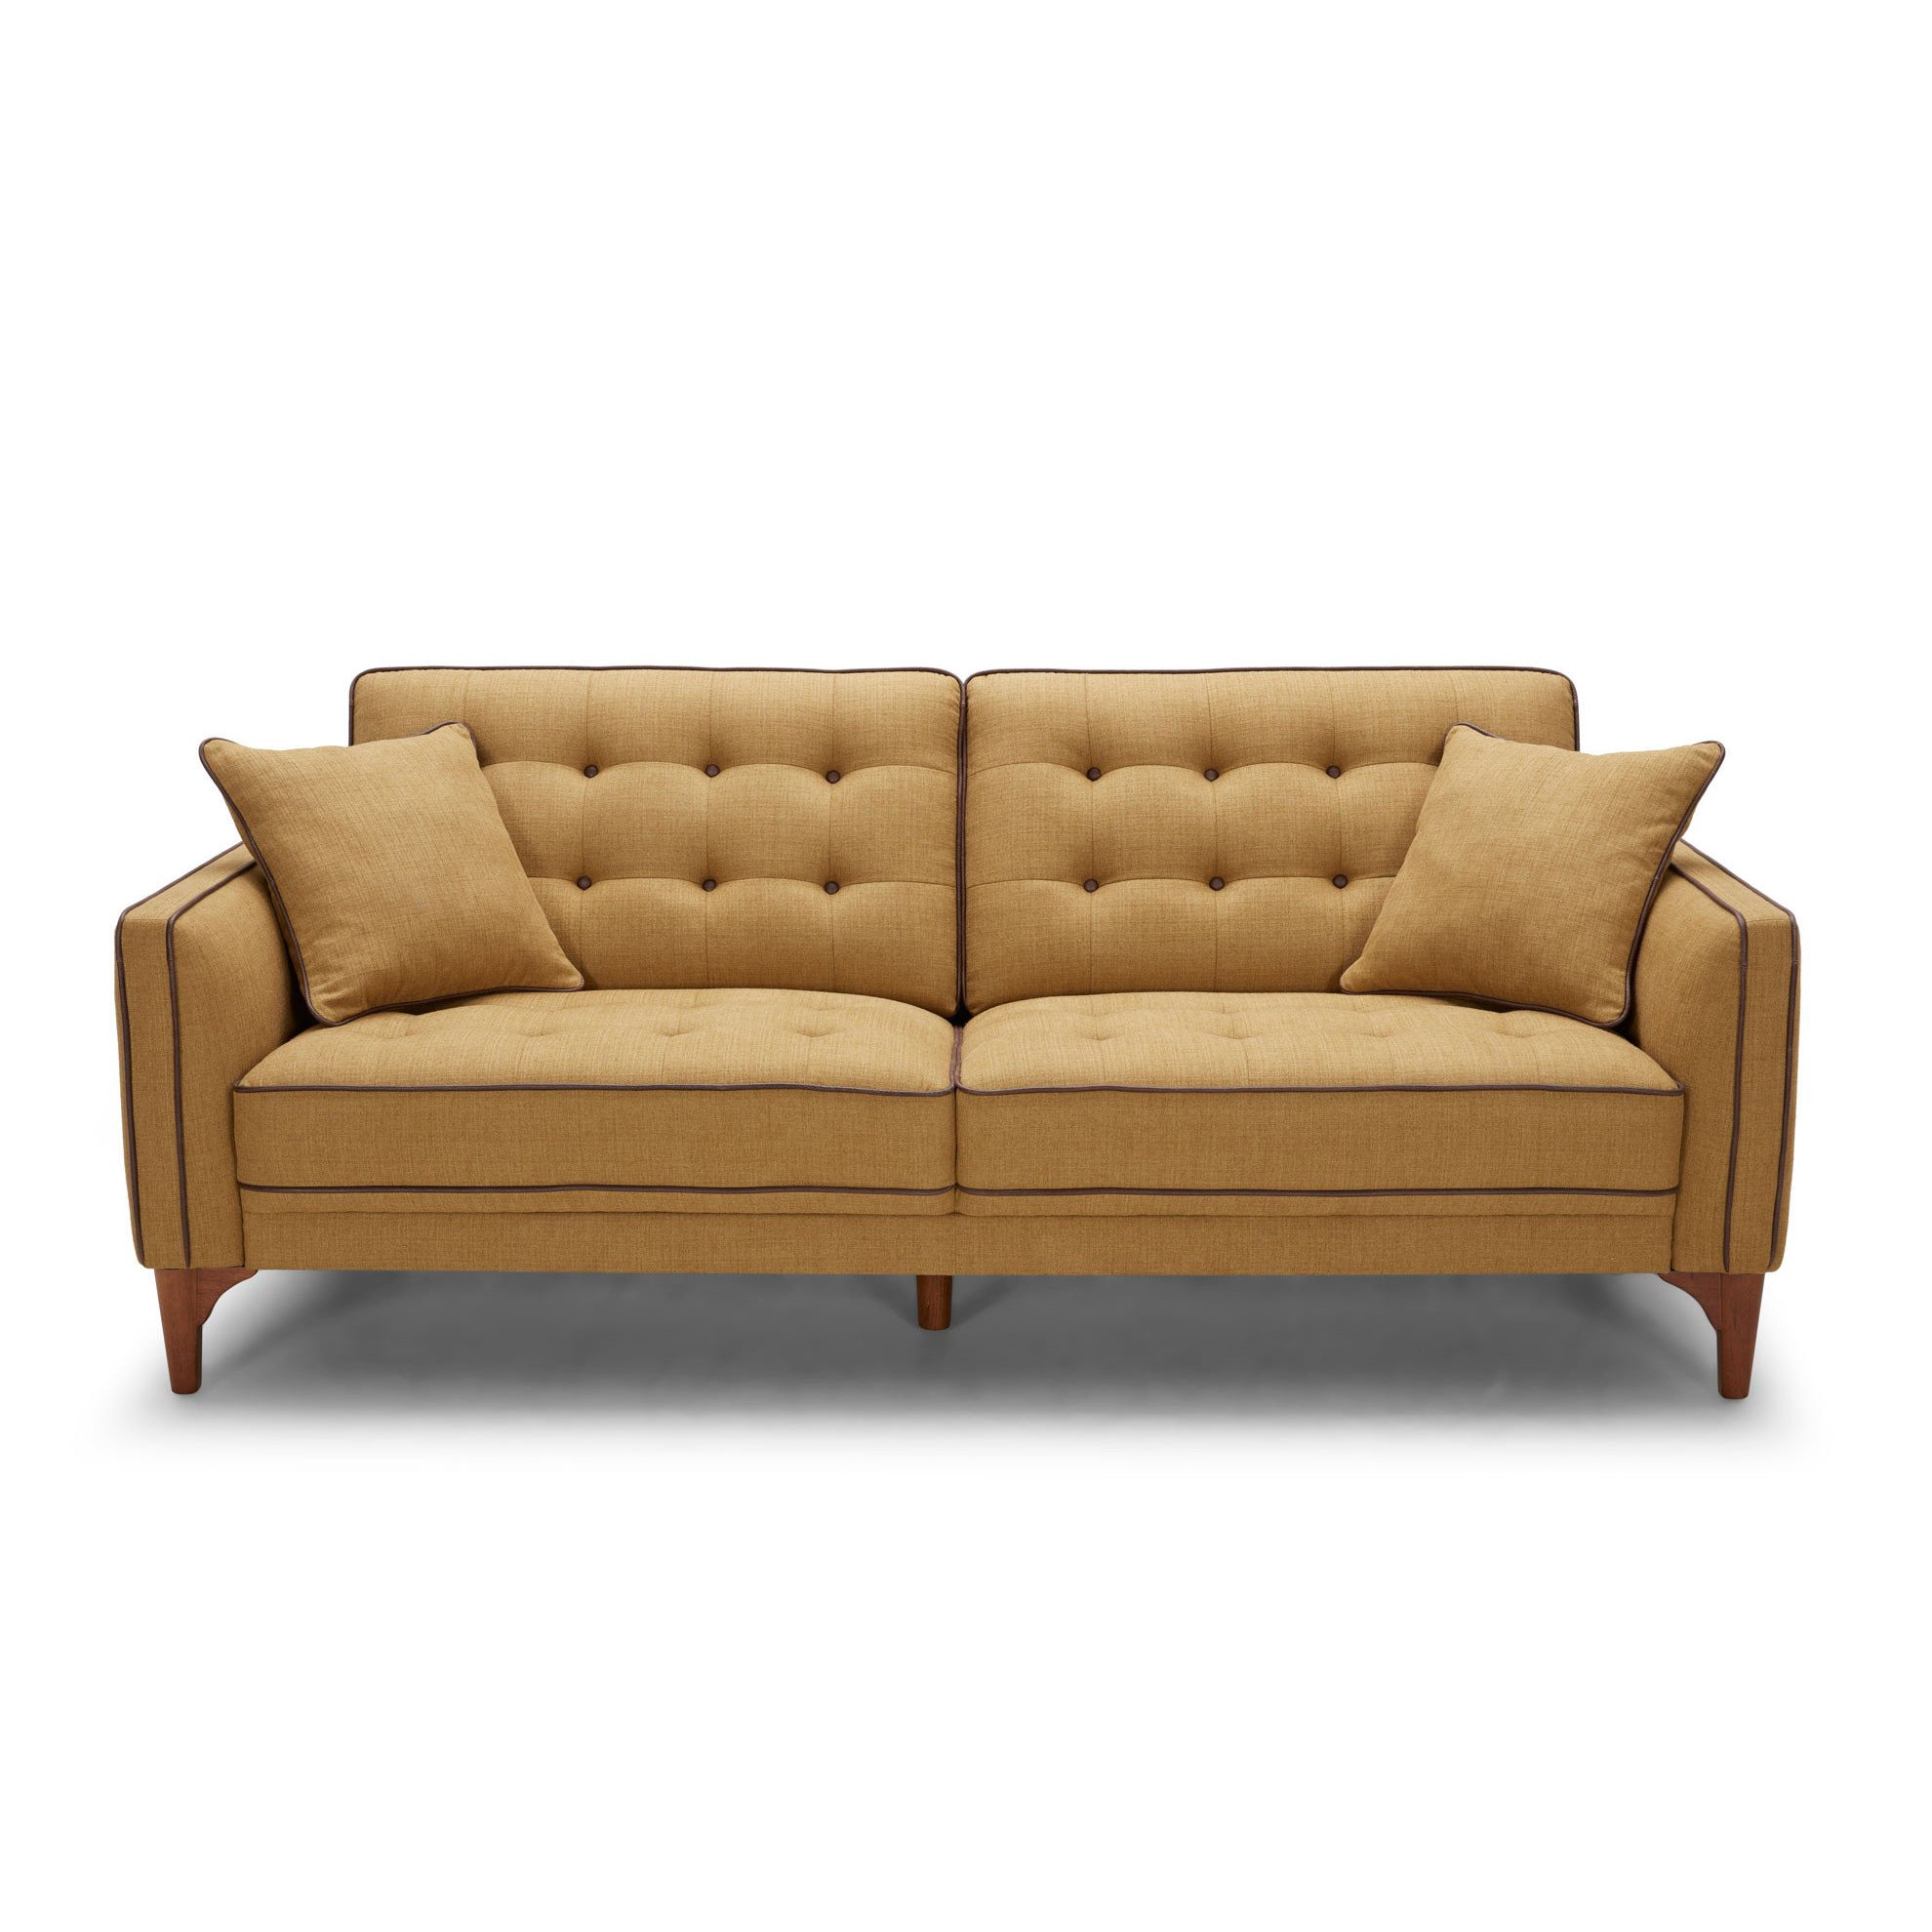 KUKA #2720 Full Leather Sofa (1/2/3-Seater/Ottoman)( M Series )(I) - Picket&Rail